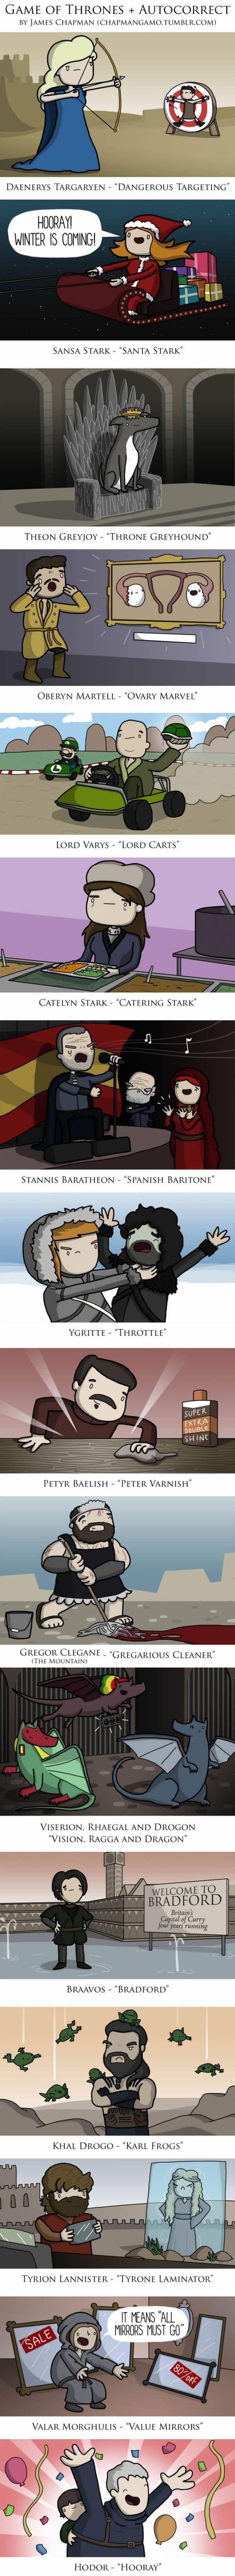 #GameofThrones + Autocorrect (By James Chapman)